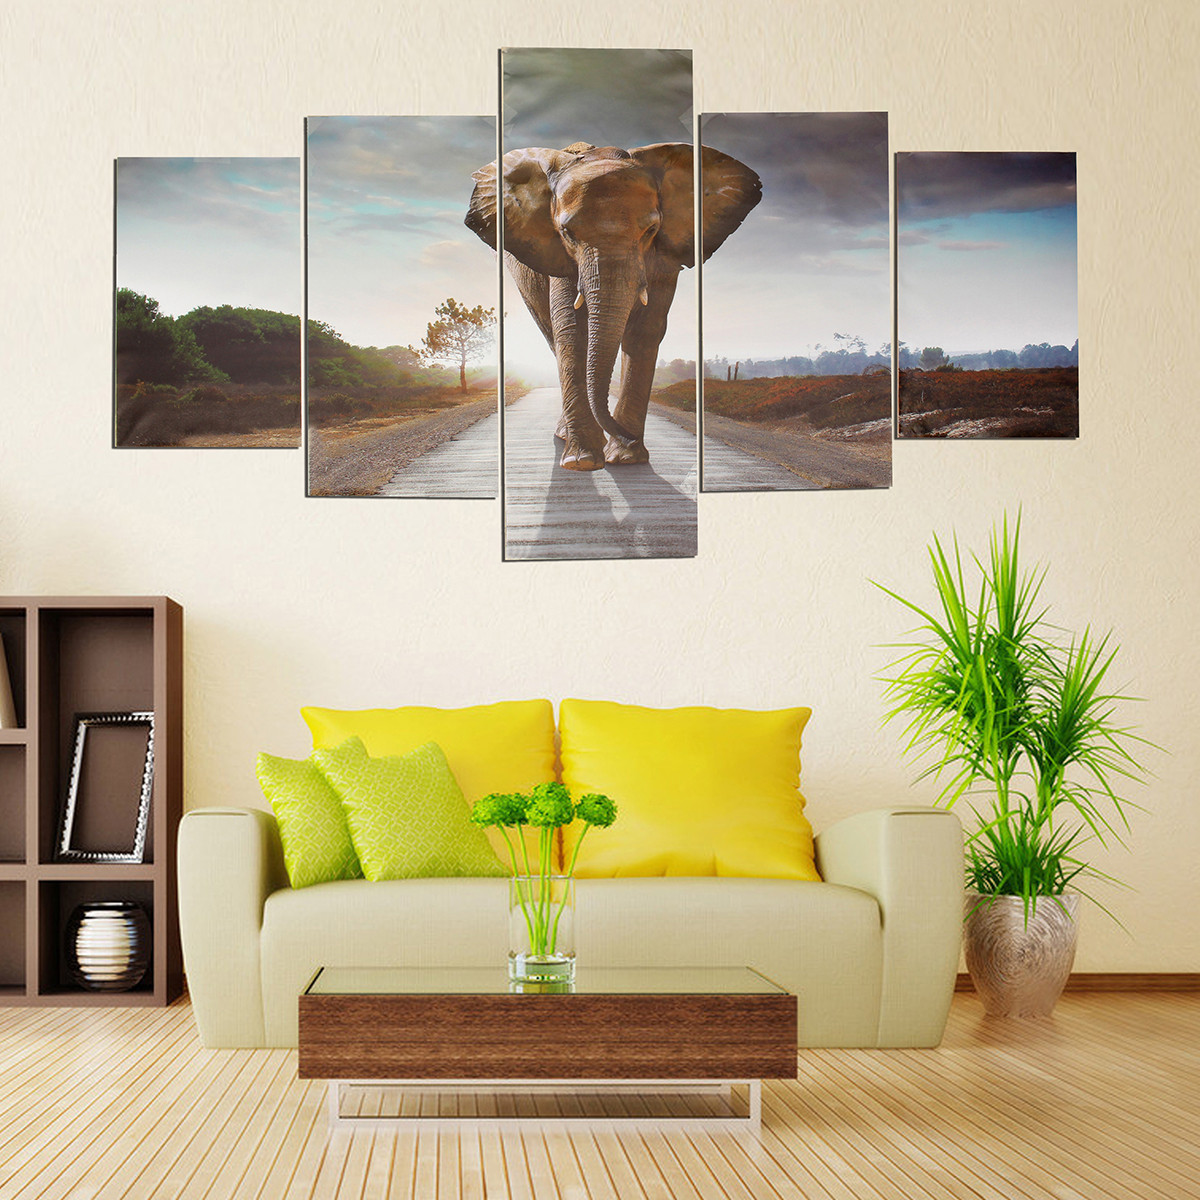 Details About 5pcs Elephant Painting Abstract Canvas Wall Art Poster Home Decor Unframed